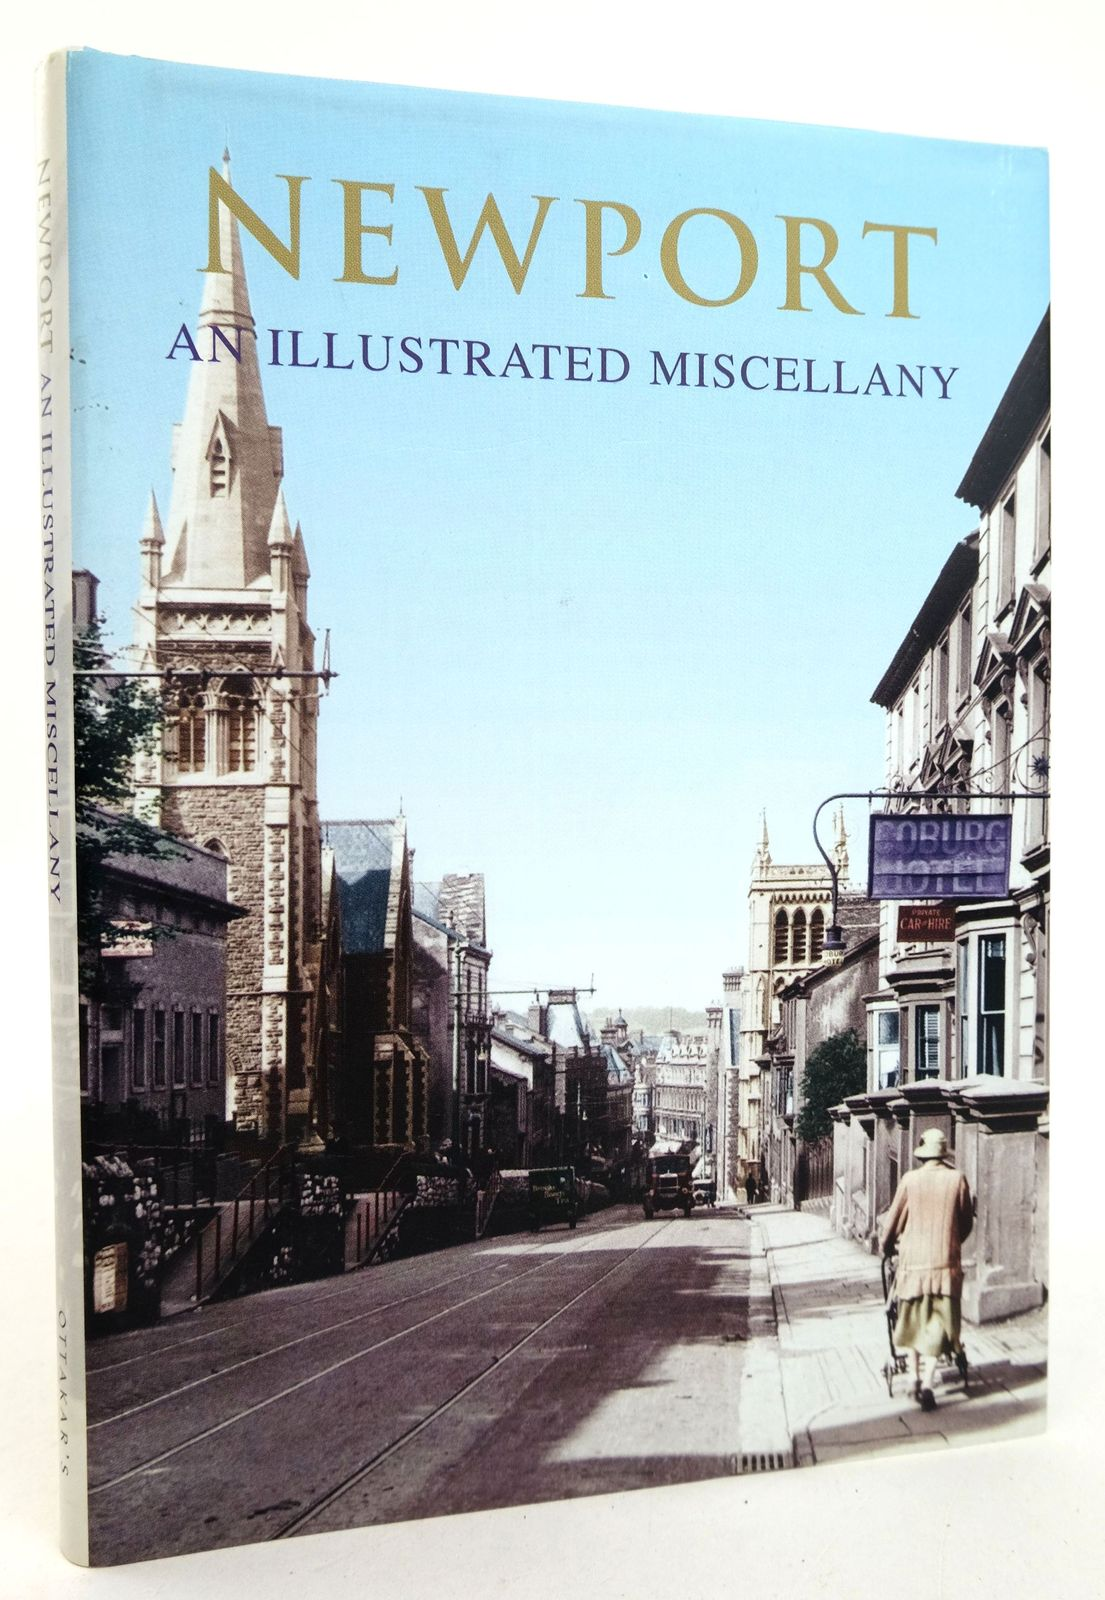 Photo of NEWPORT: AN ILLUSTRATED MISCELLANY illustrated by Frith, Francis published by Ottakar's (STOCK CODE: 1819206)  for sale by Stella & Rose's Books